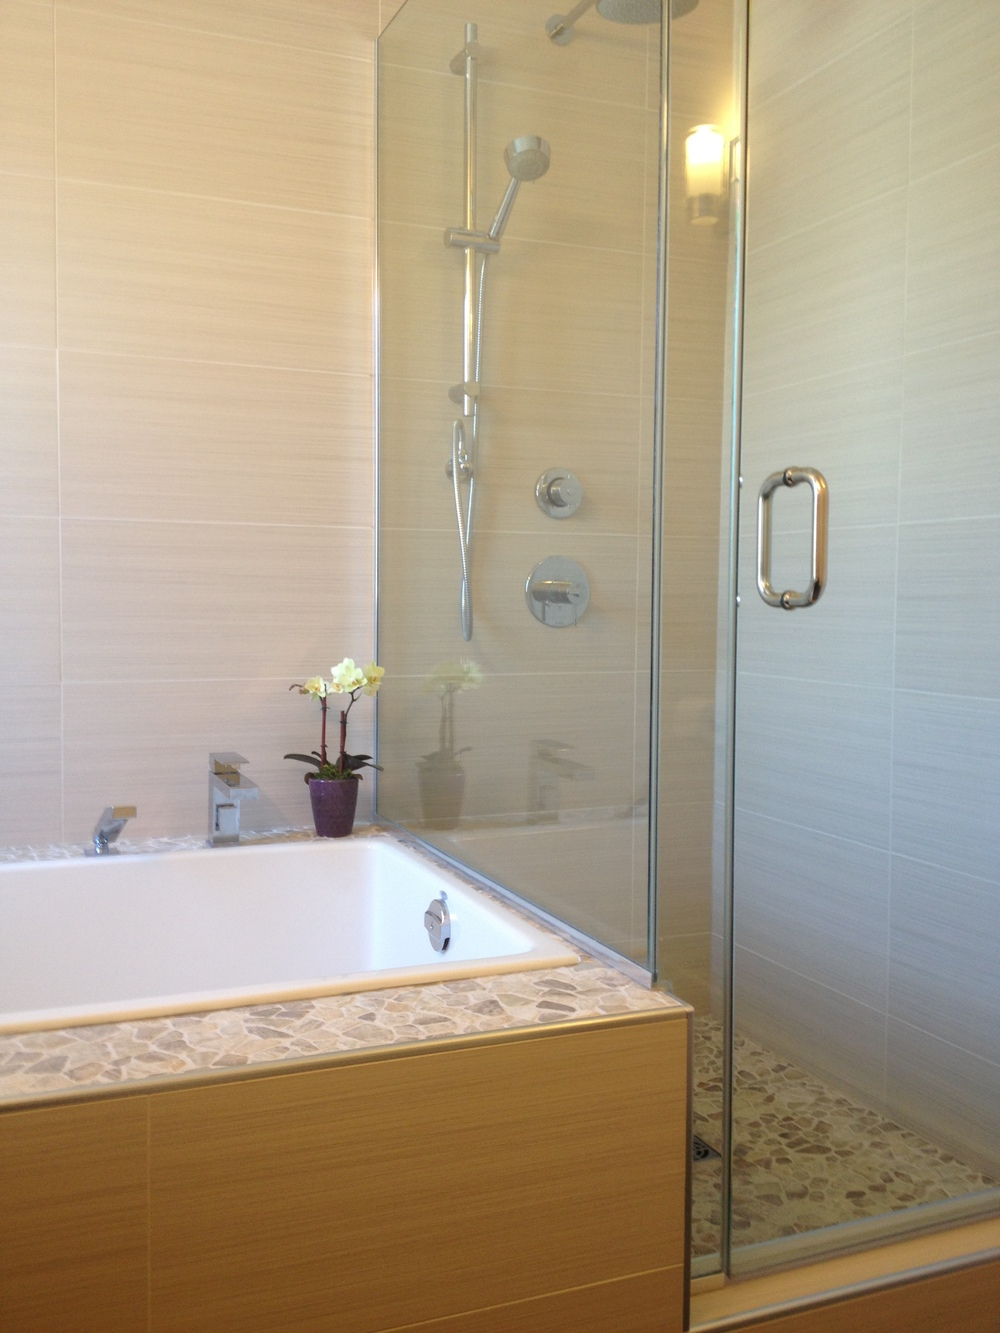 Bonnie Doon Bathroom Renovation